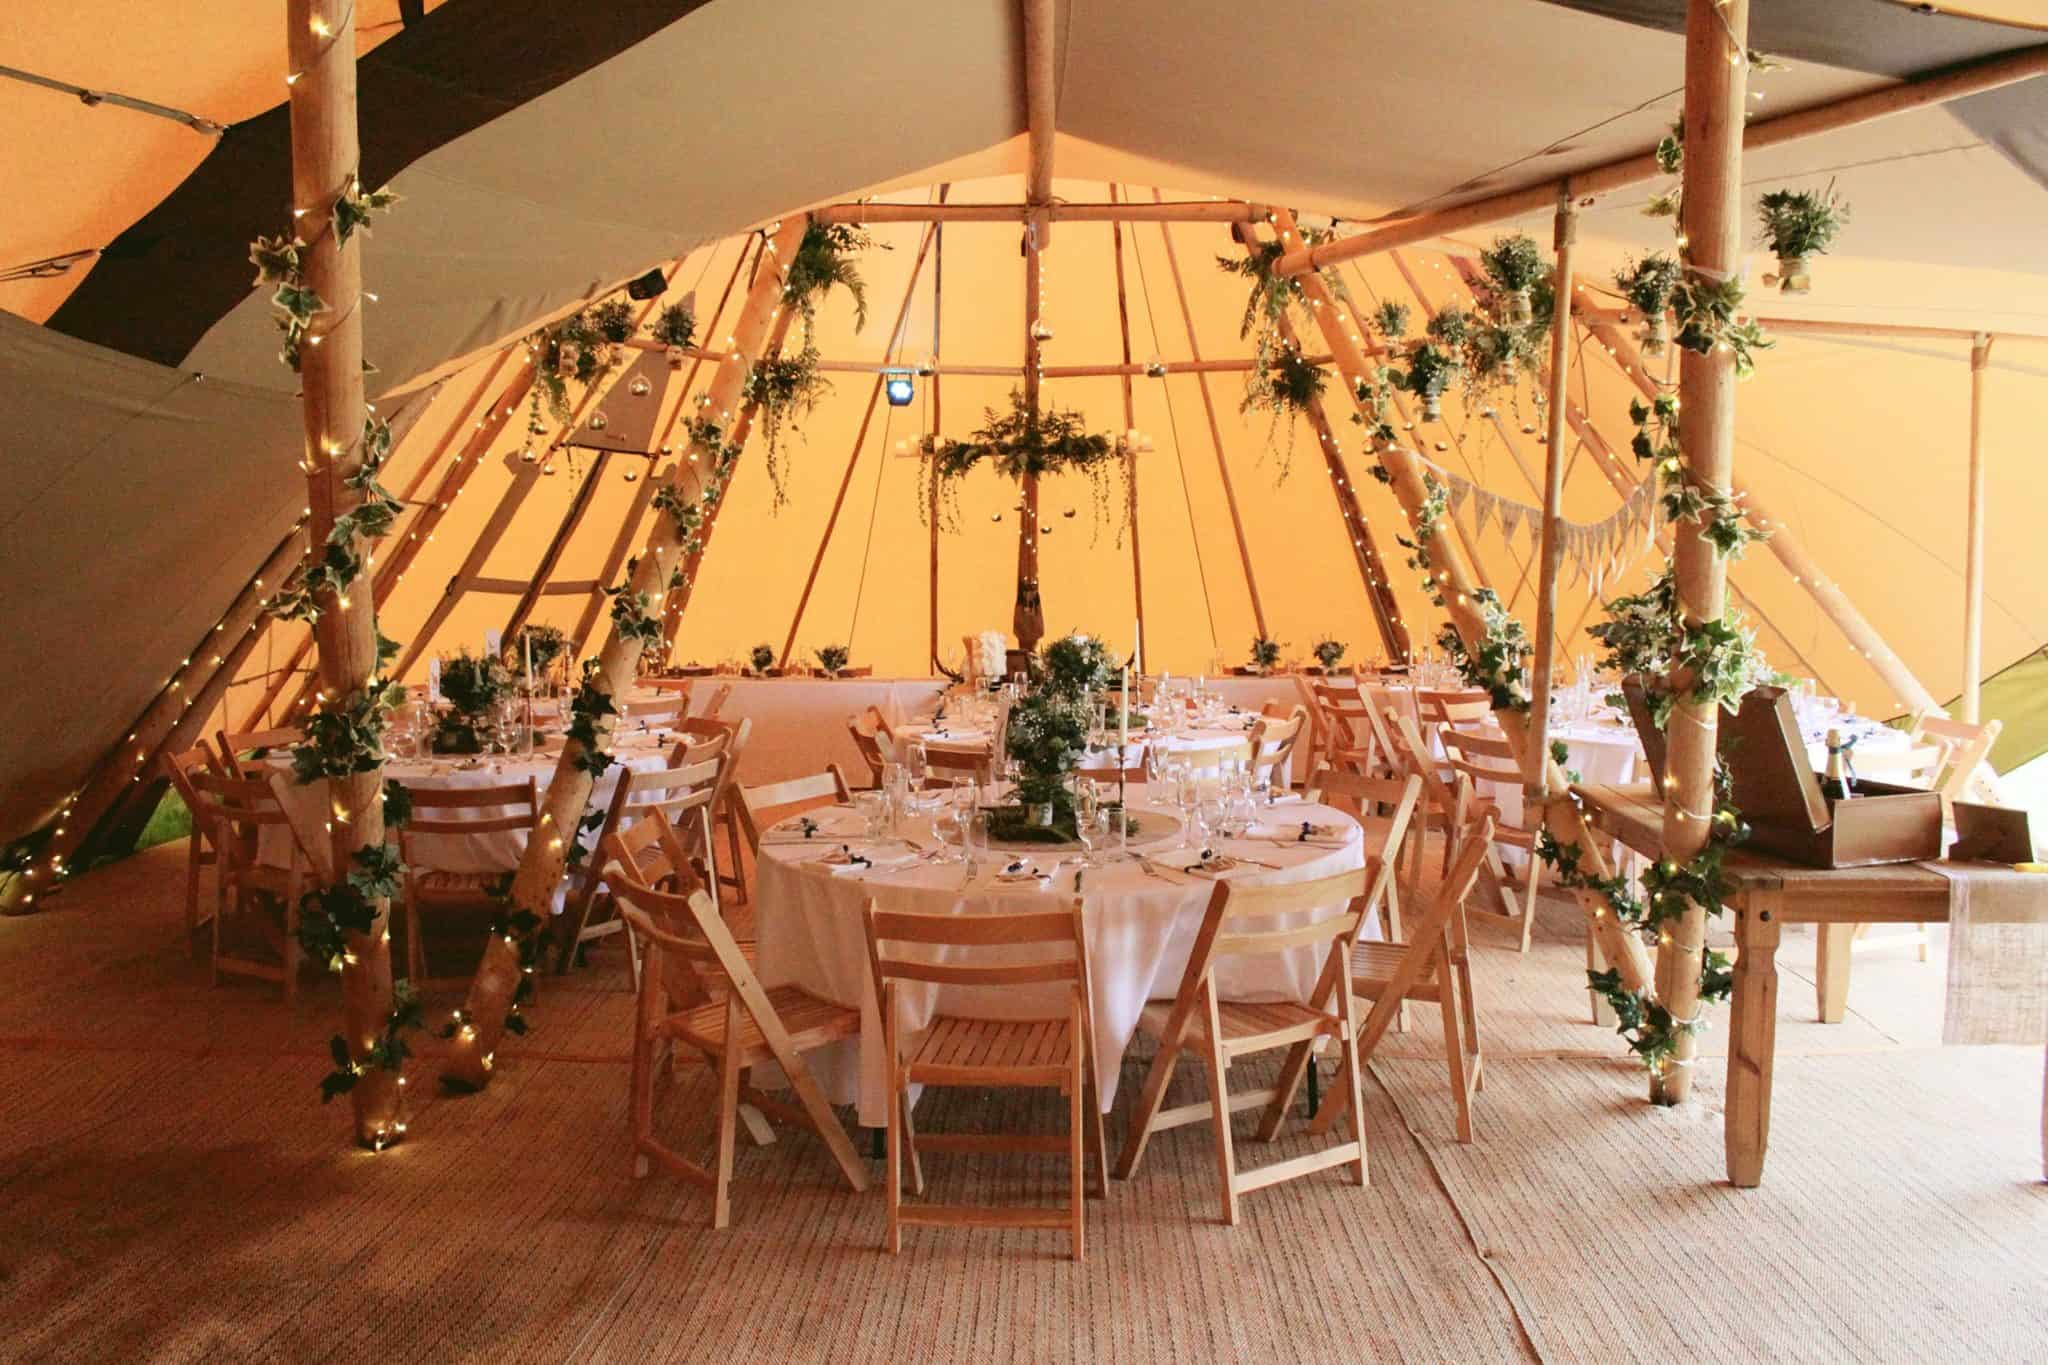 Tipi Seating with round tables - Woodland themed styling by The Rustic Wedding Company